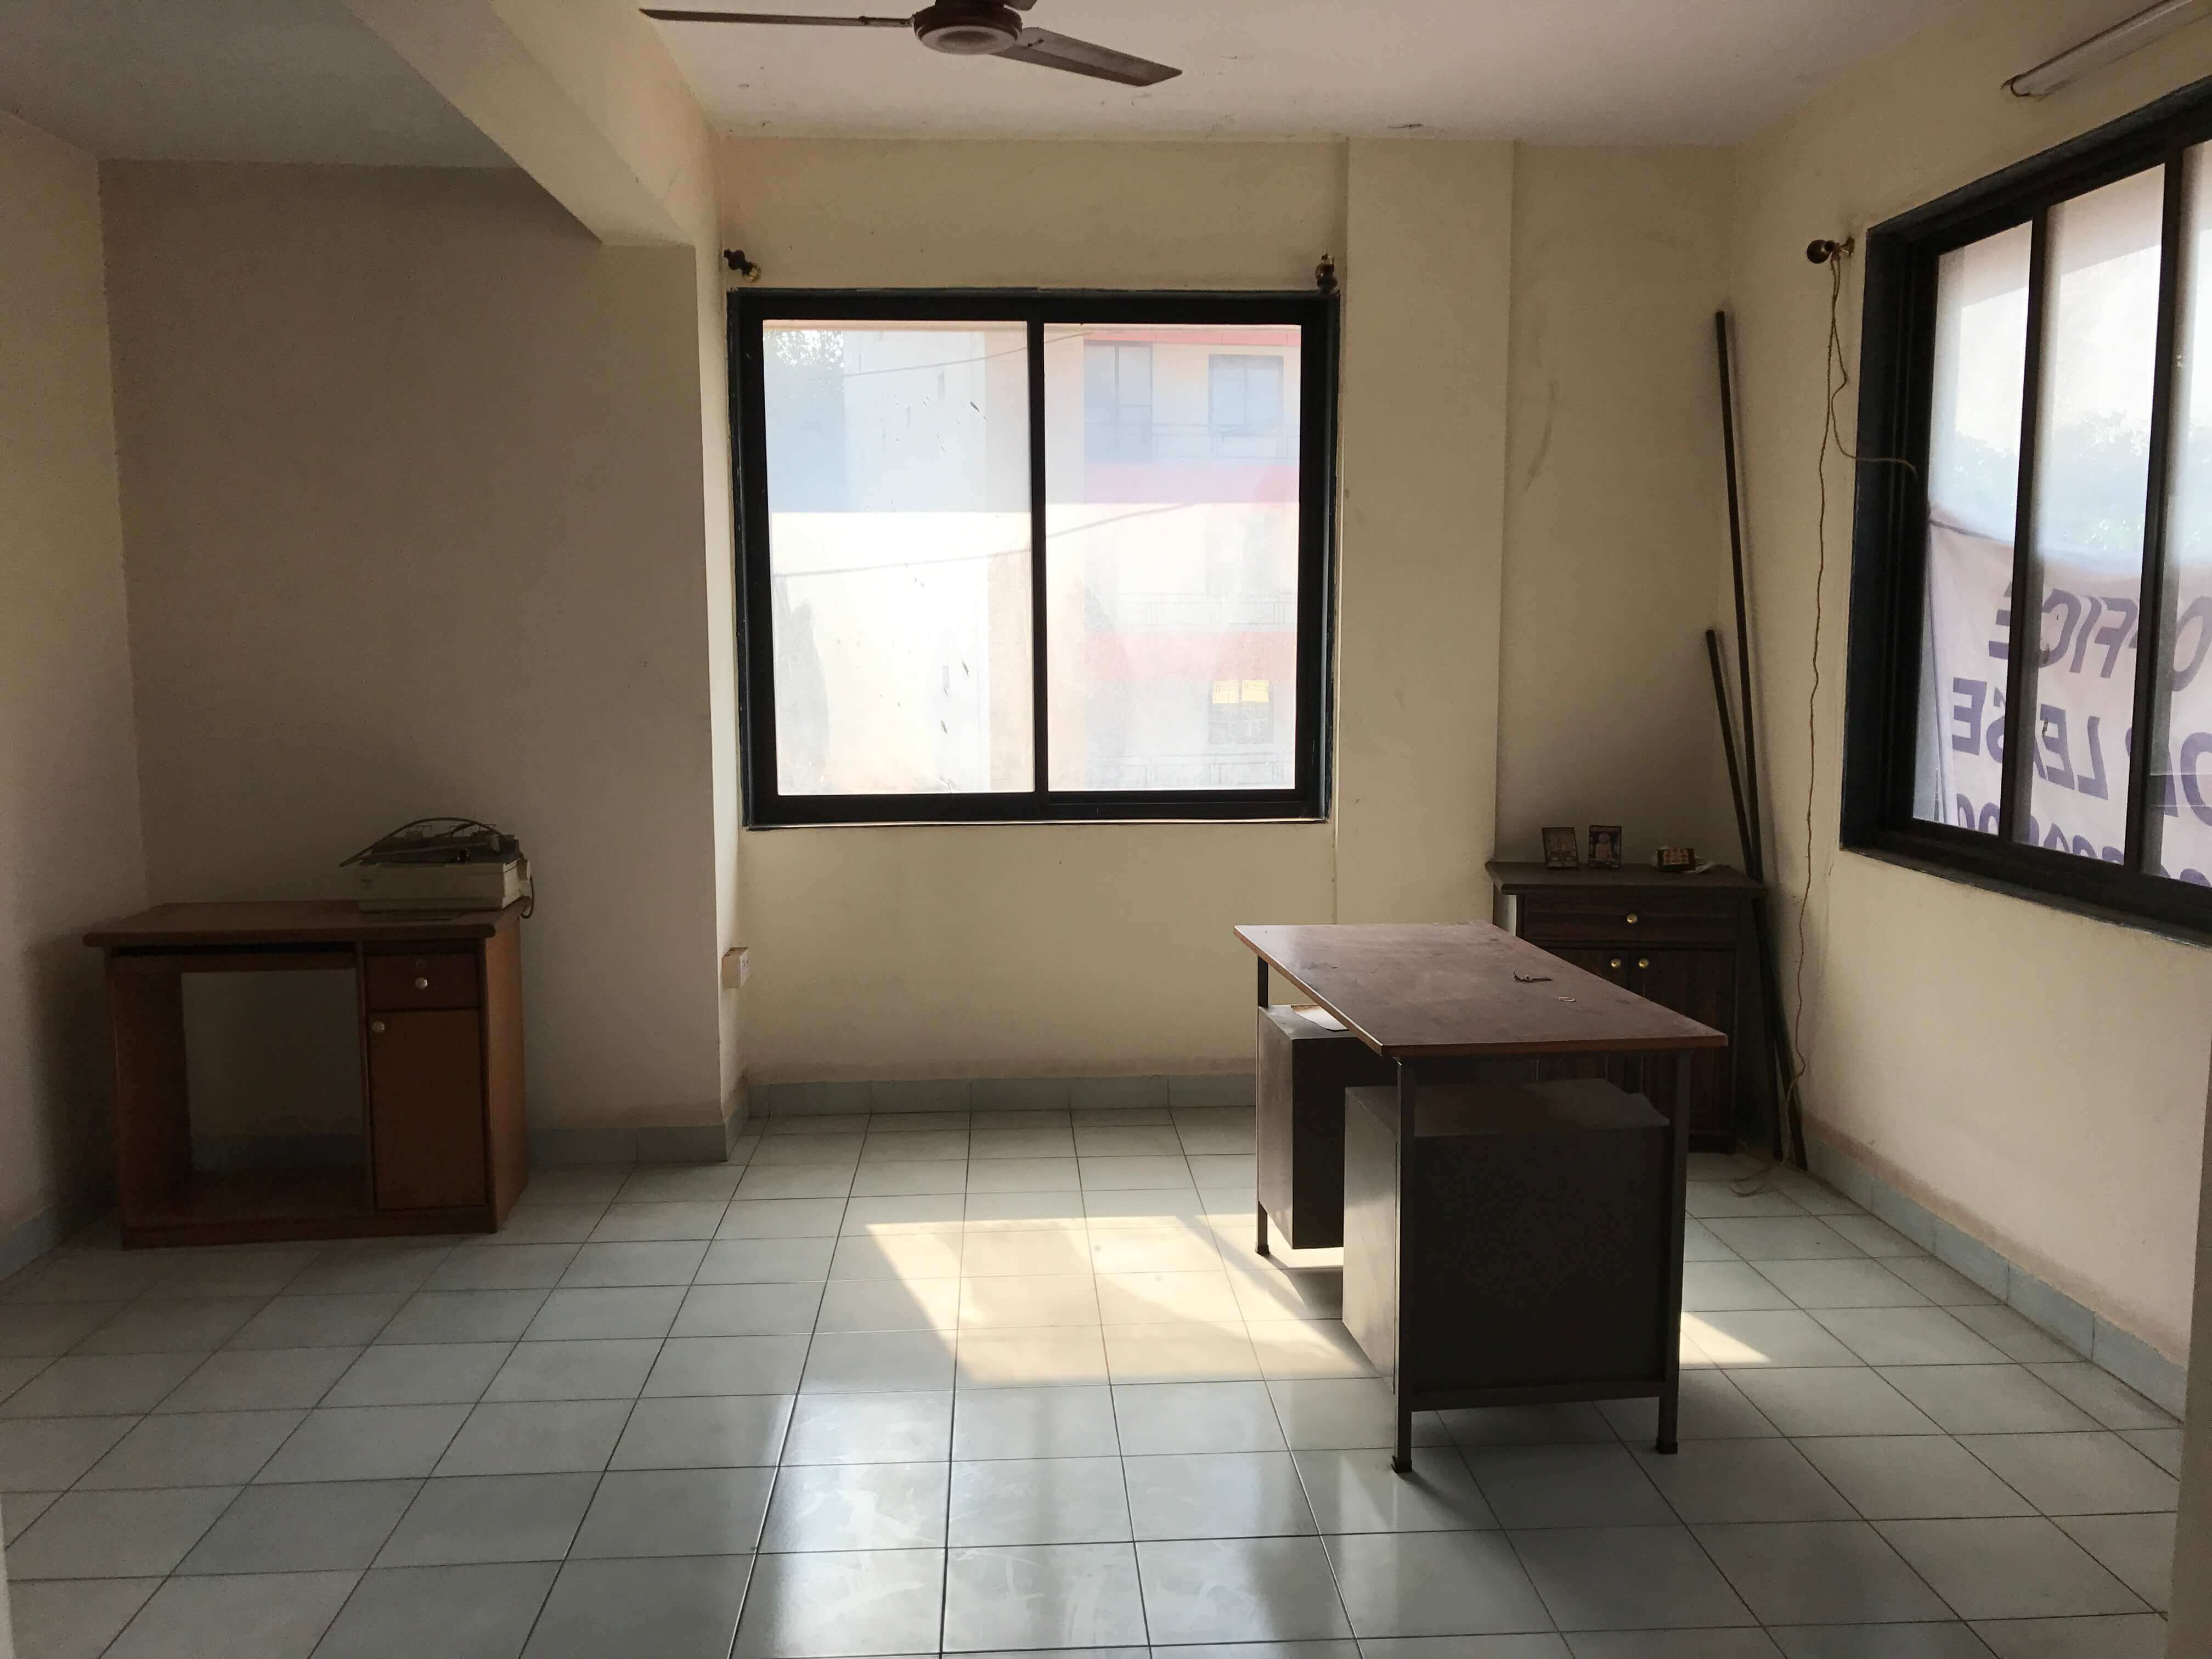 Unfurnished Office space for rent on 1st floor near Mapusa, court, Goa